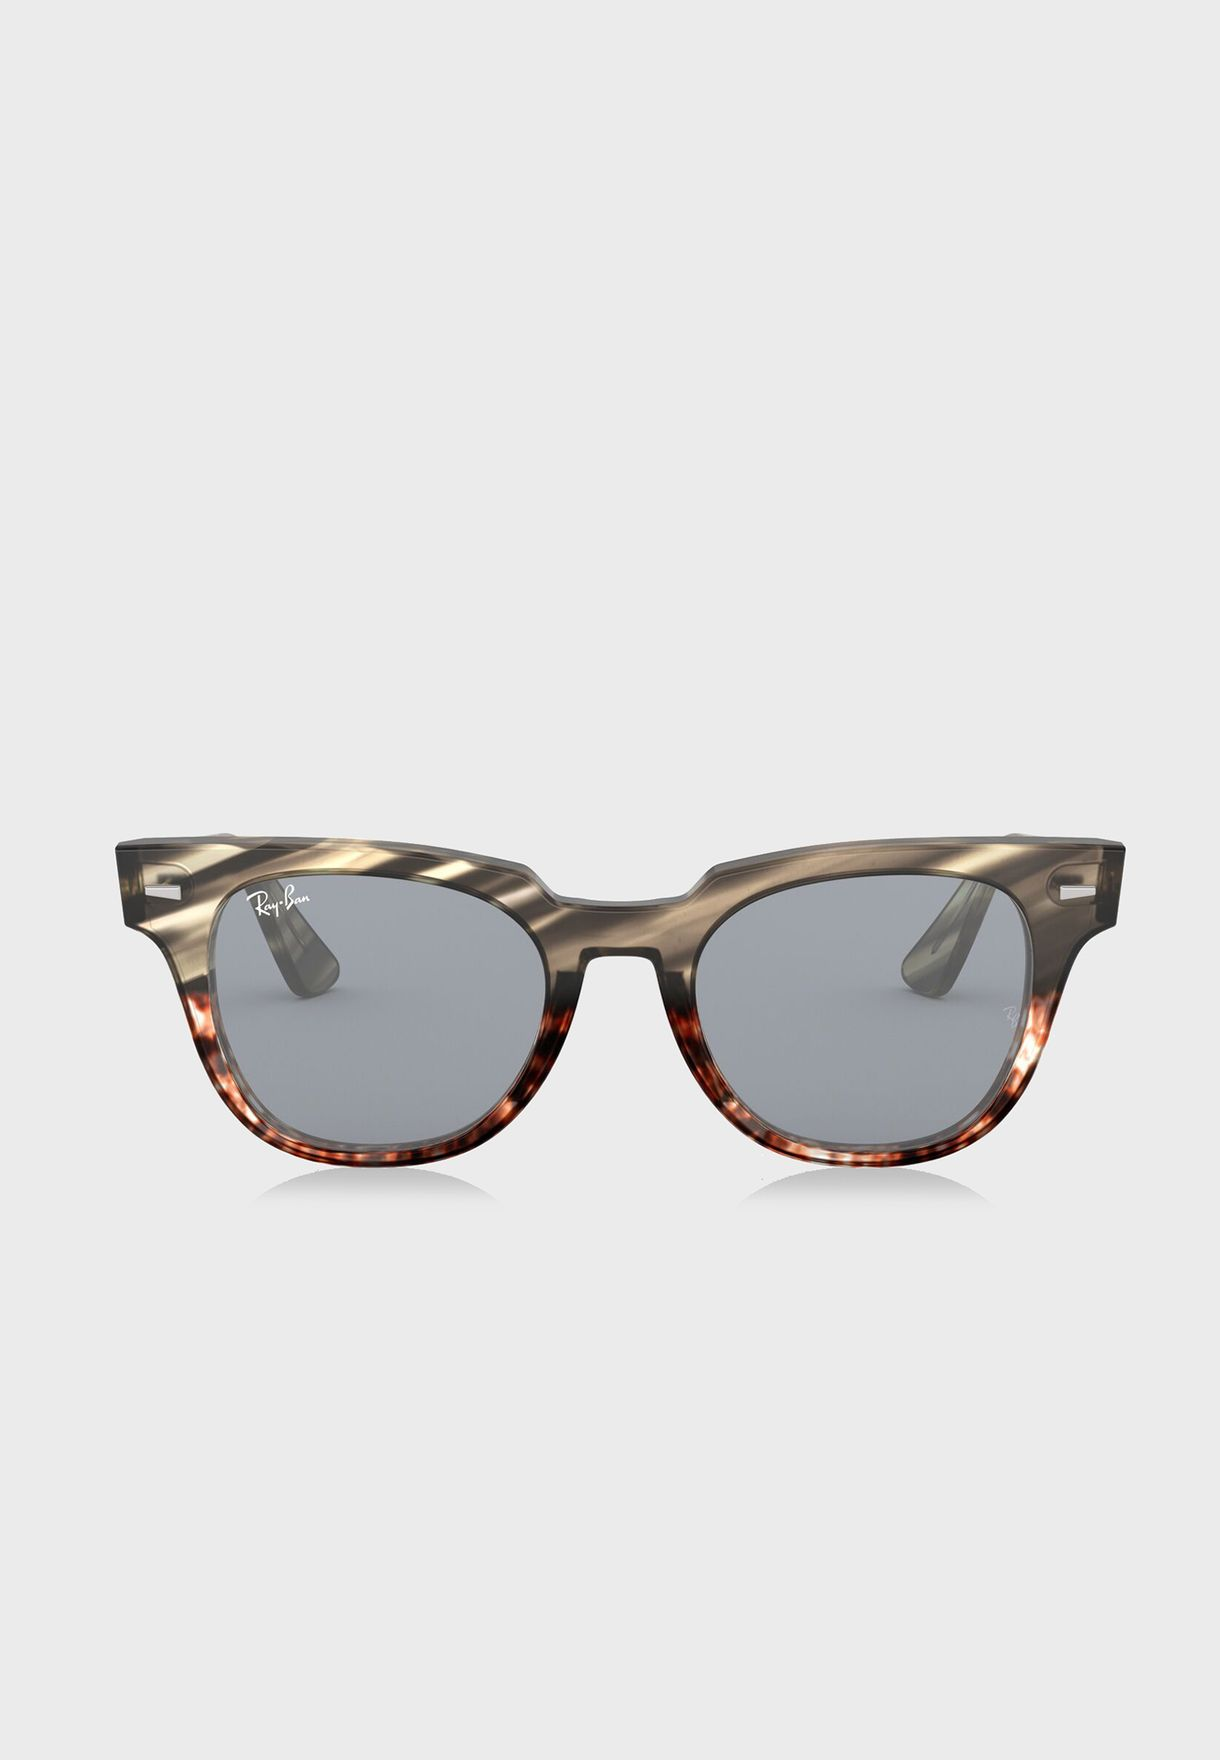 8c5c83c48a2 Shop Ray-Ban prints 0RB2168 Wayfarer Sunglasses 8.05367E+12 for Men ...